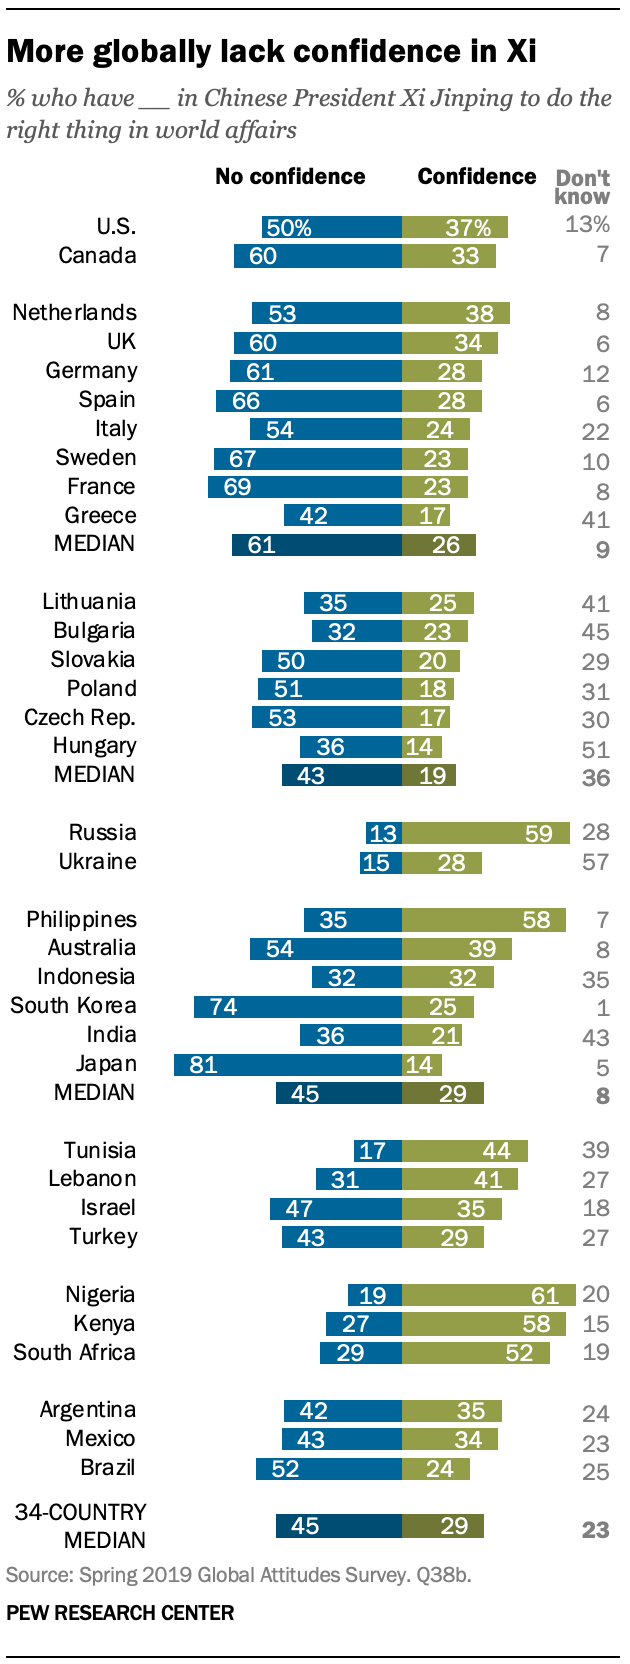 A chart showing more globally lack confidence in Xi